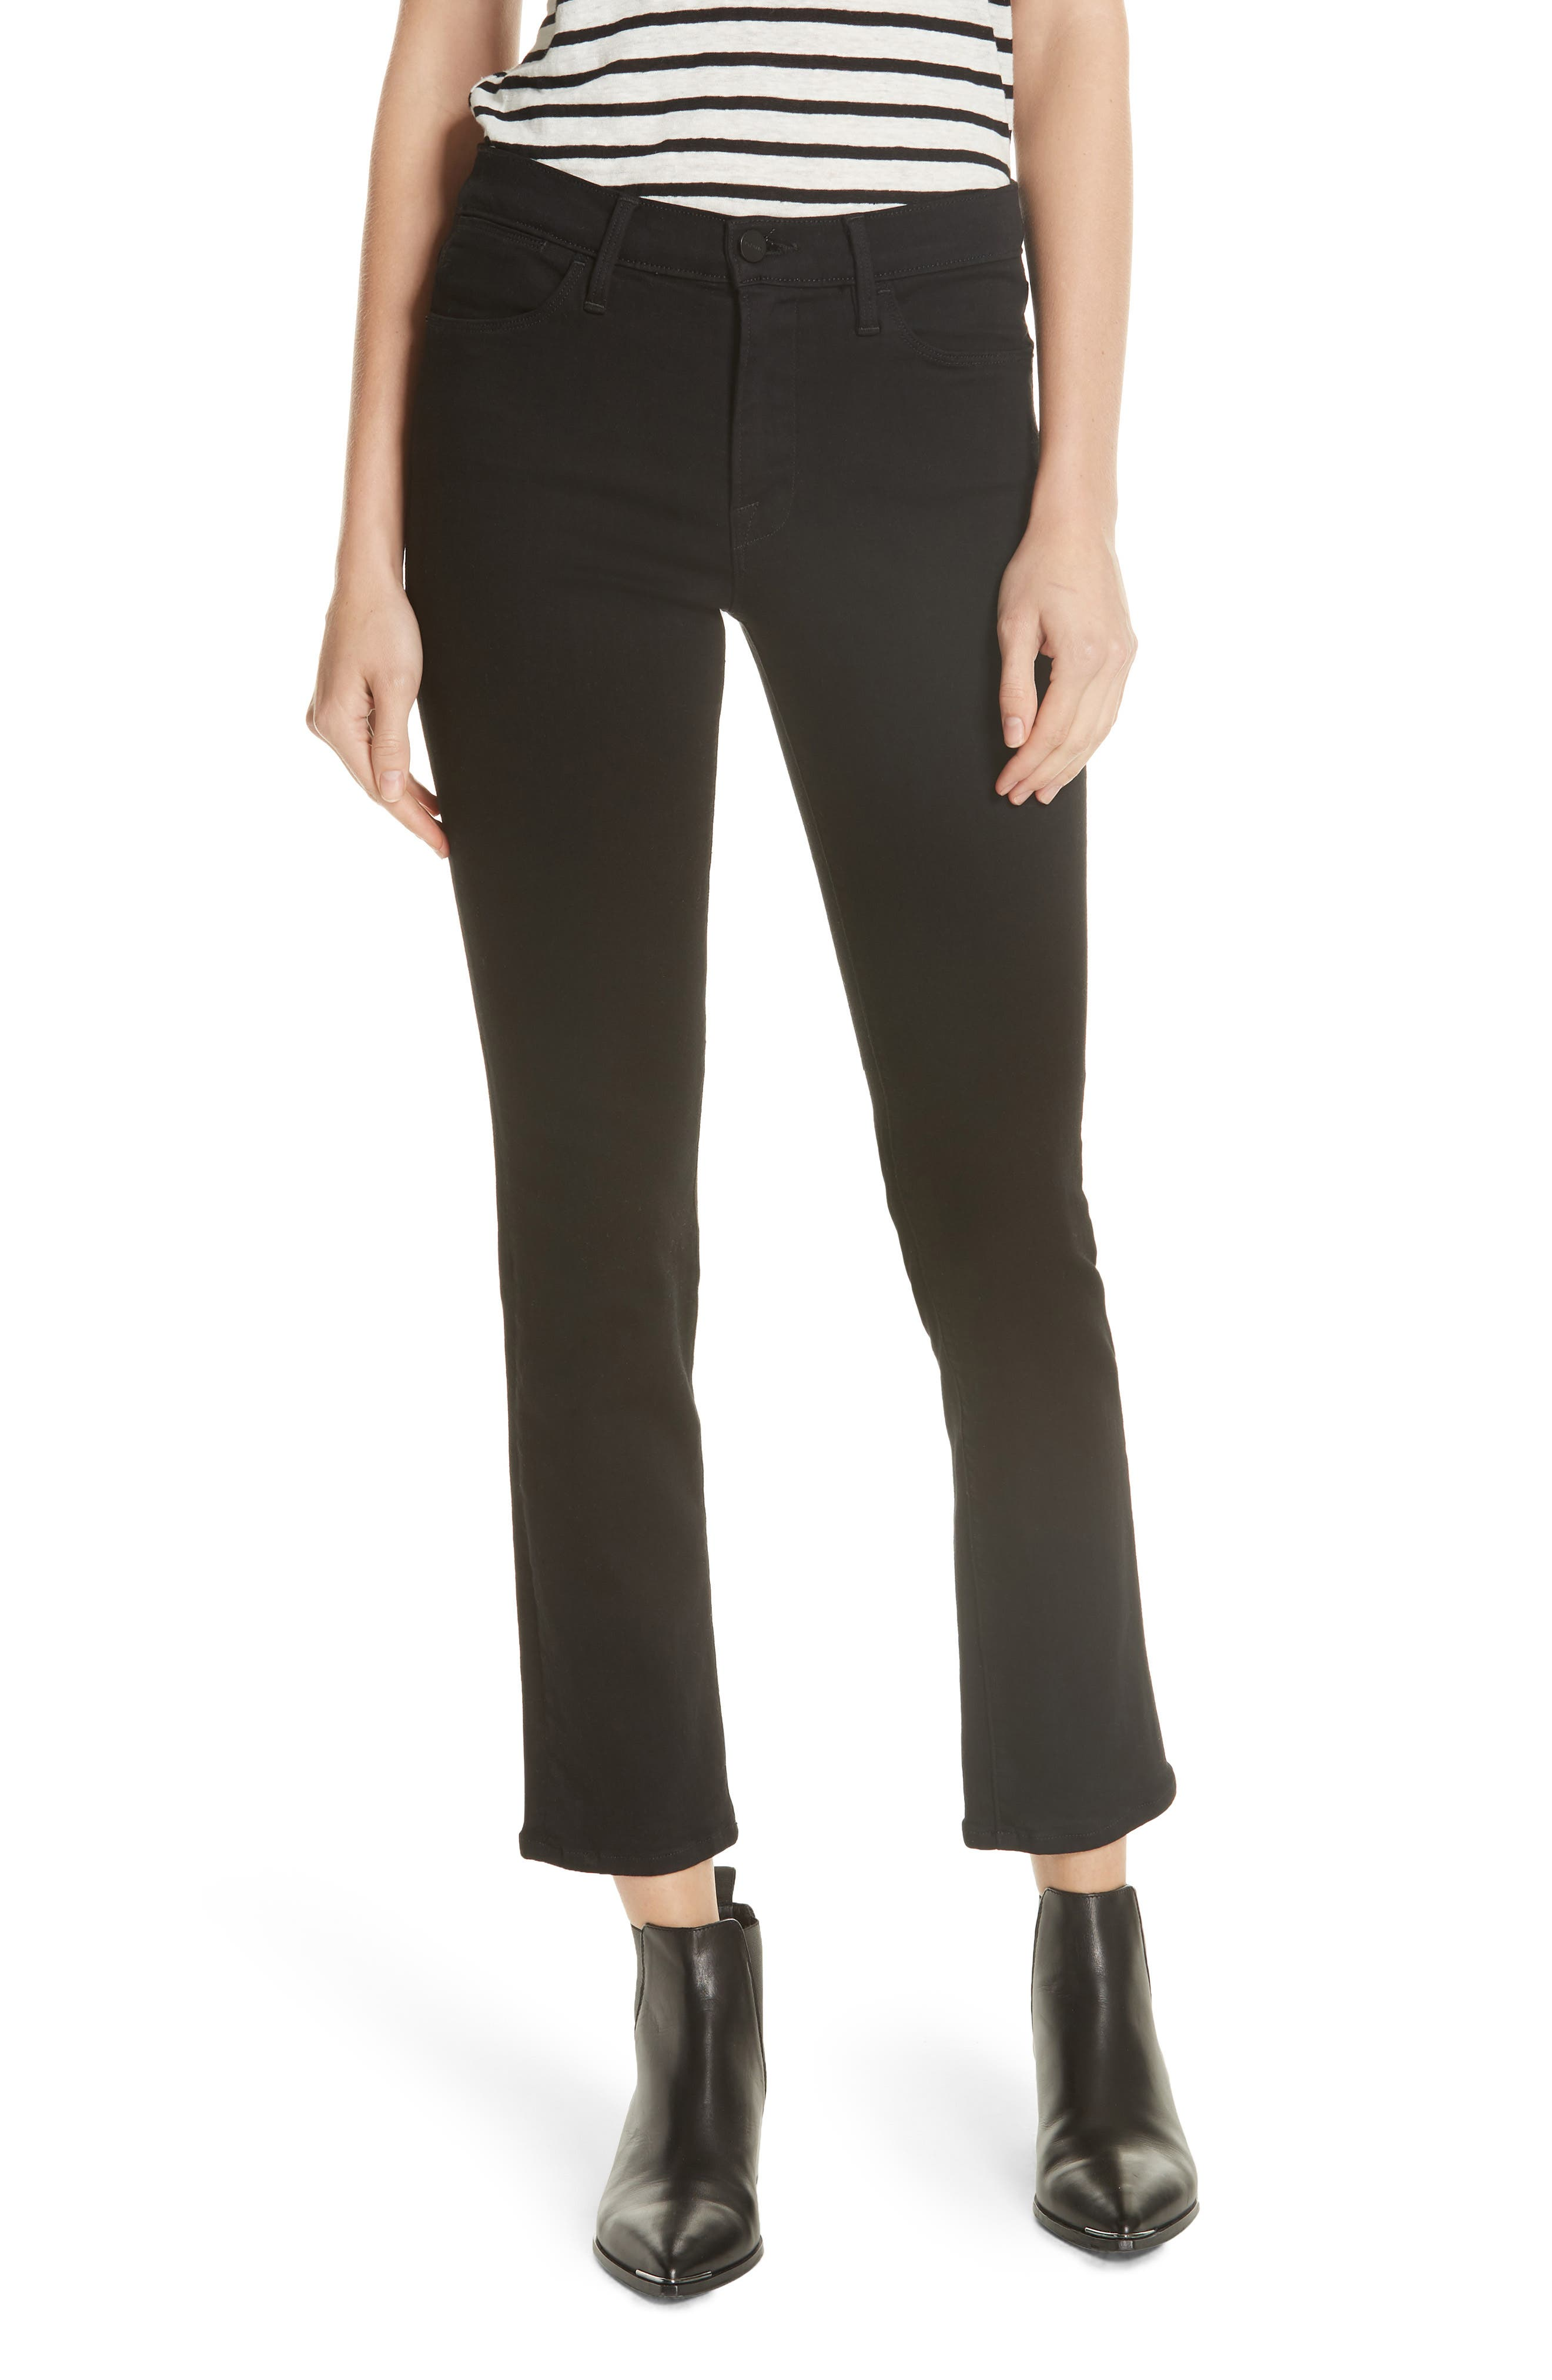 FRAME 'Le High Straight' High Rise Crop Jeans, Main, color, FILM NOIR